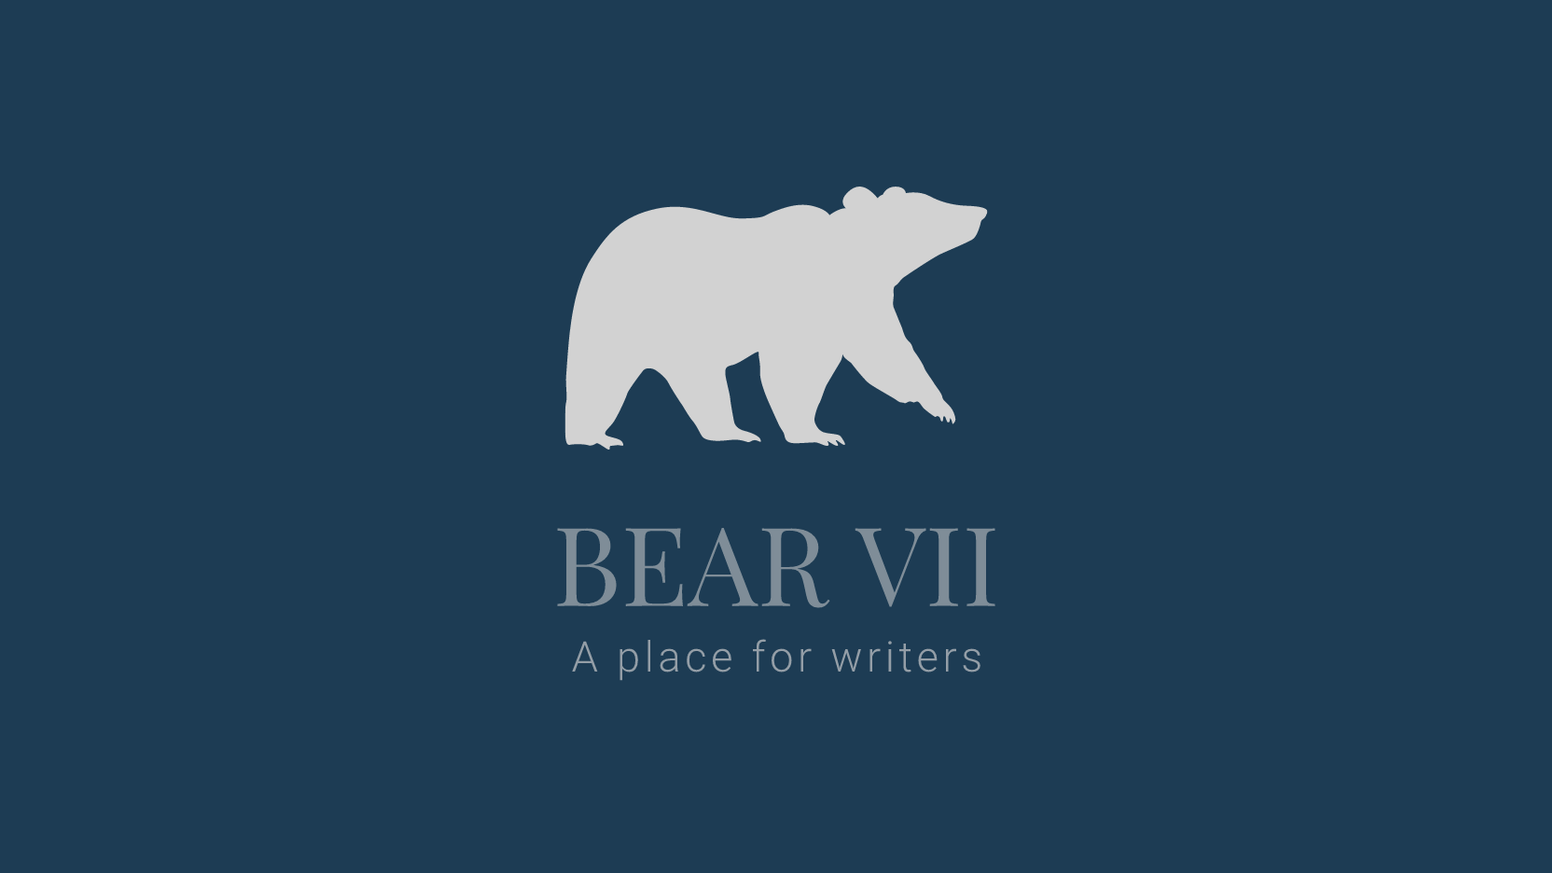 Bear VII A place for writers